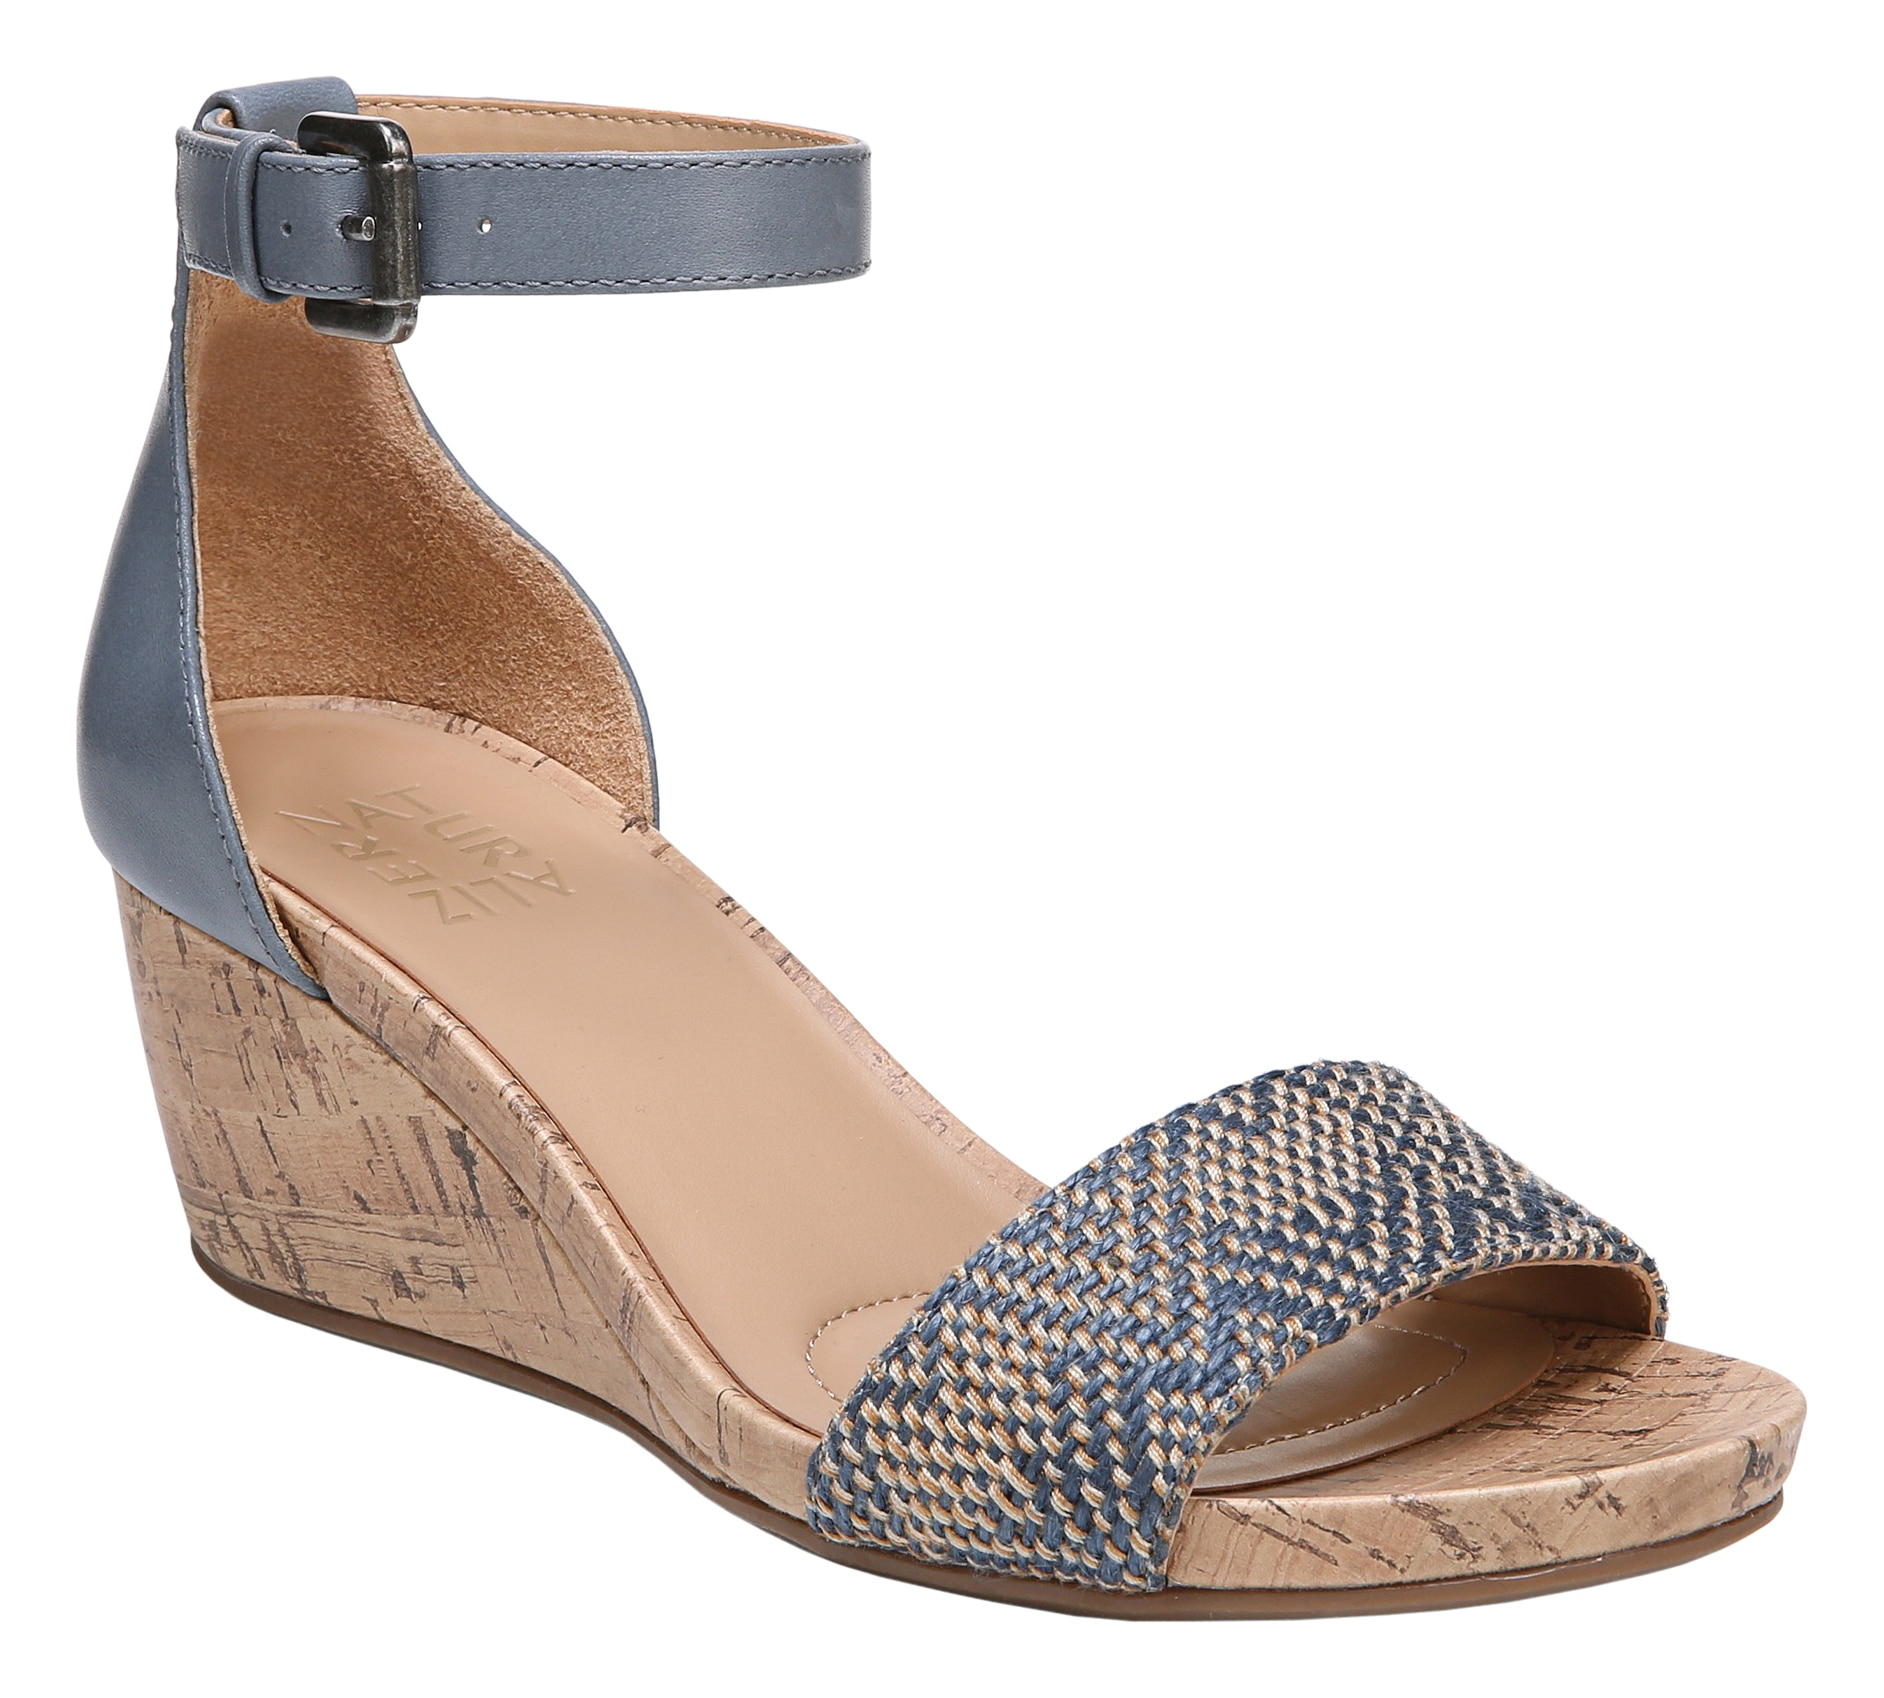 Buy Naturalizer Cami Wedge Sandal - Shoes & Handbags - Women's Shoes -  Sandals - Online Shopping for Canadians